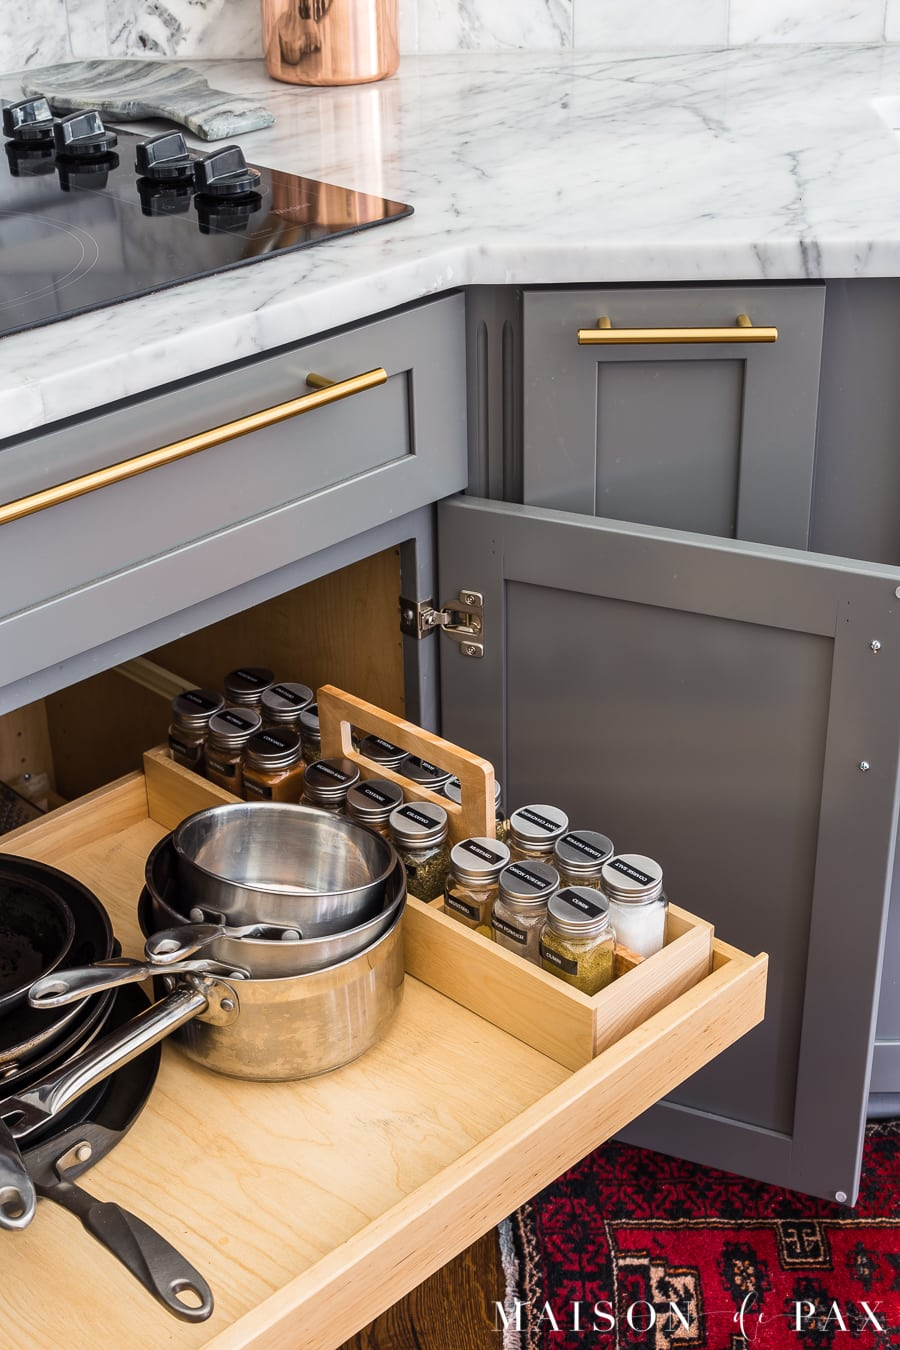 cabinet pull out with pots and pans and spice organizer- Maison de Pax